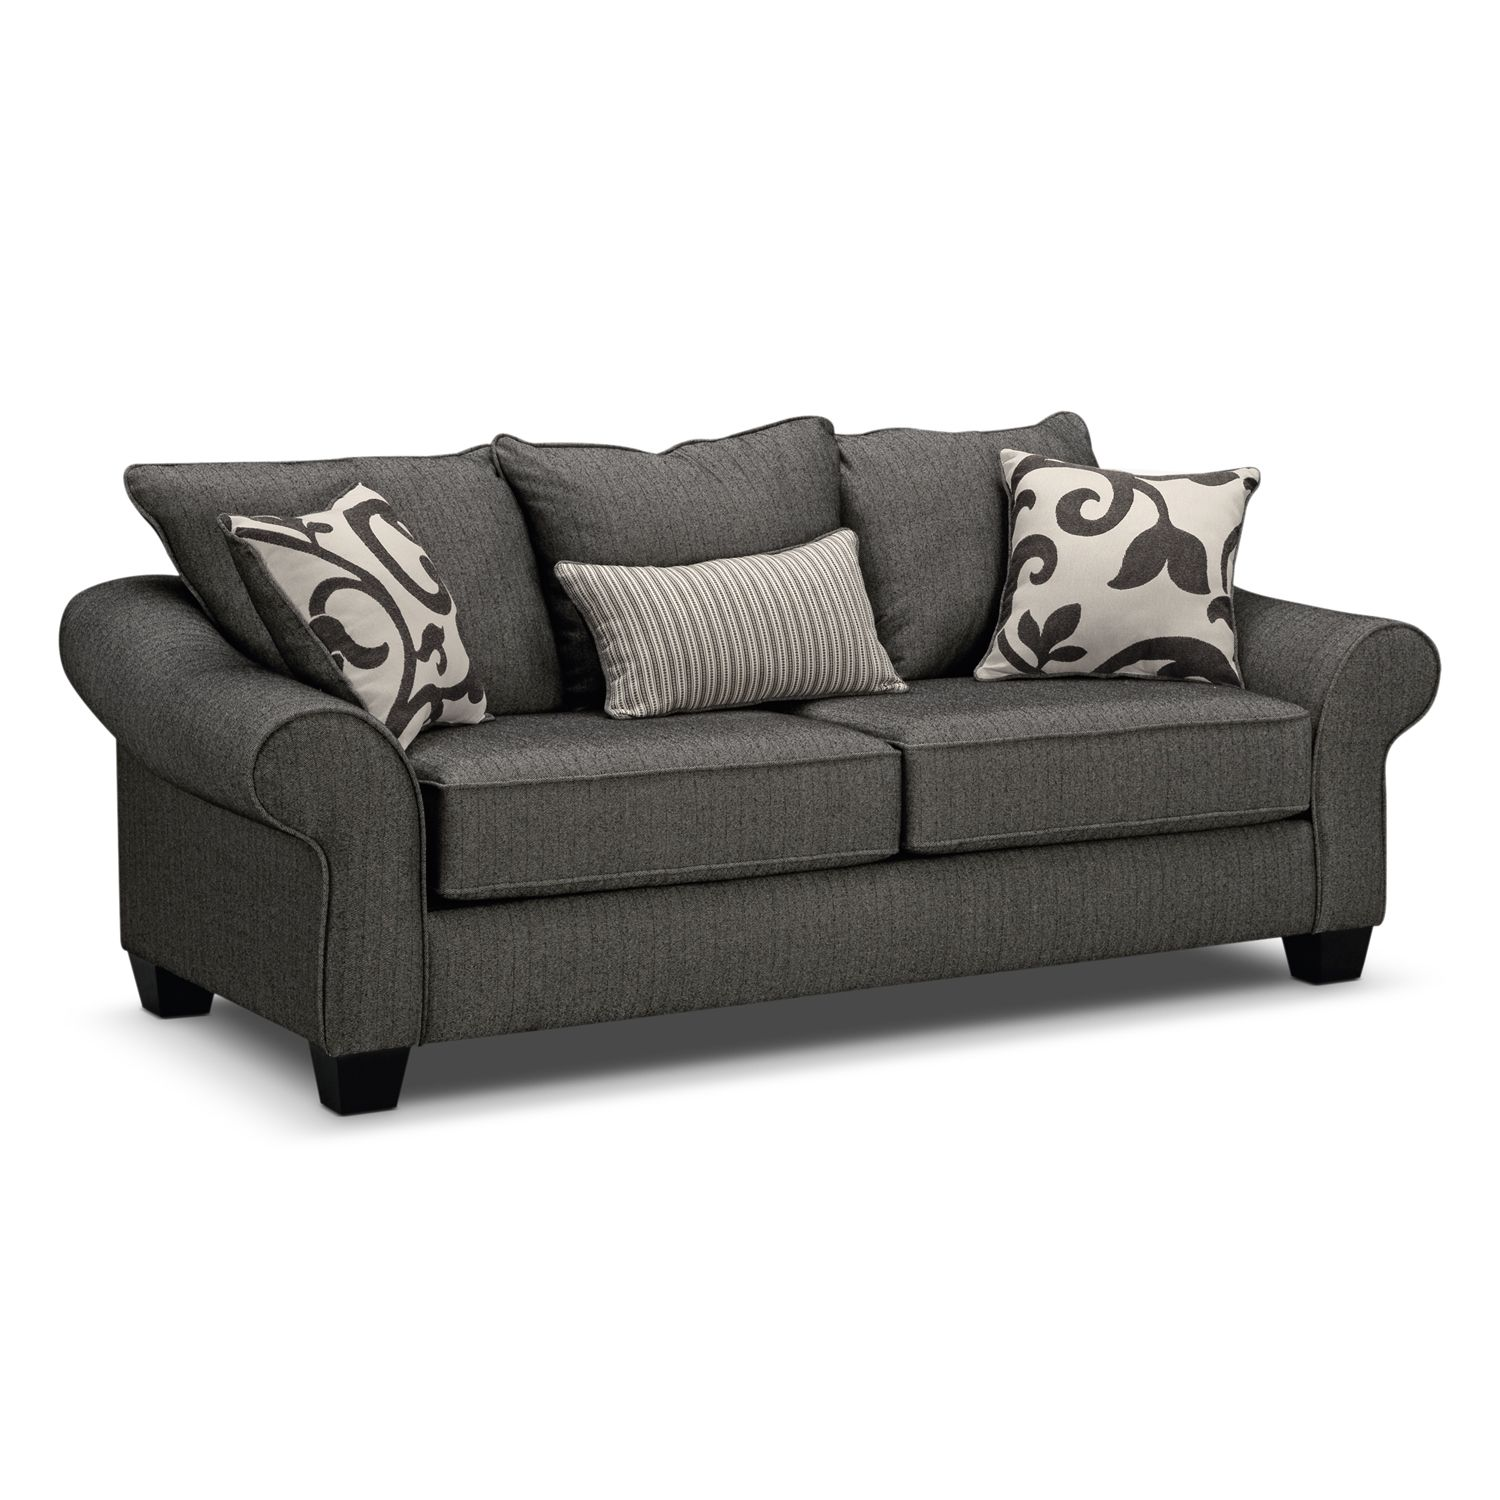 Smartly Dressed Give Your Living Room Some Fashionable